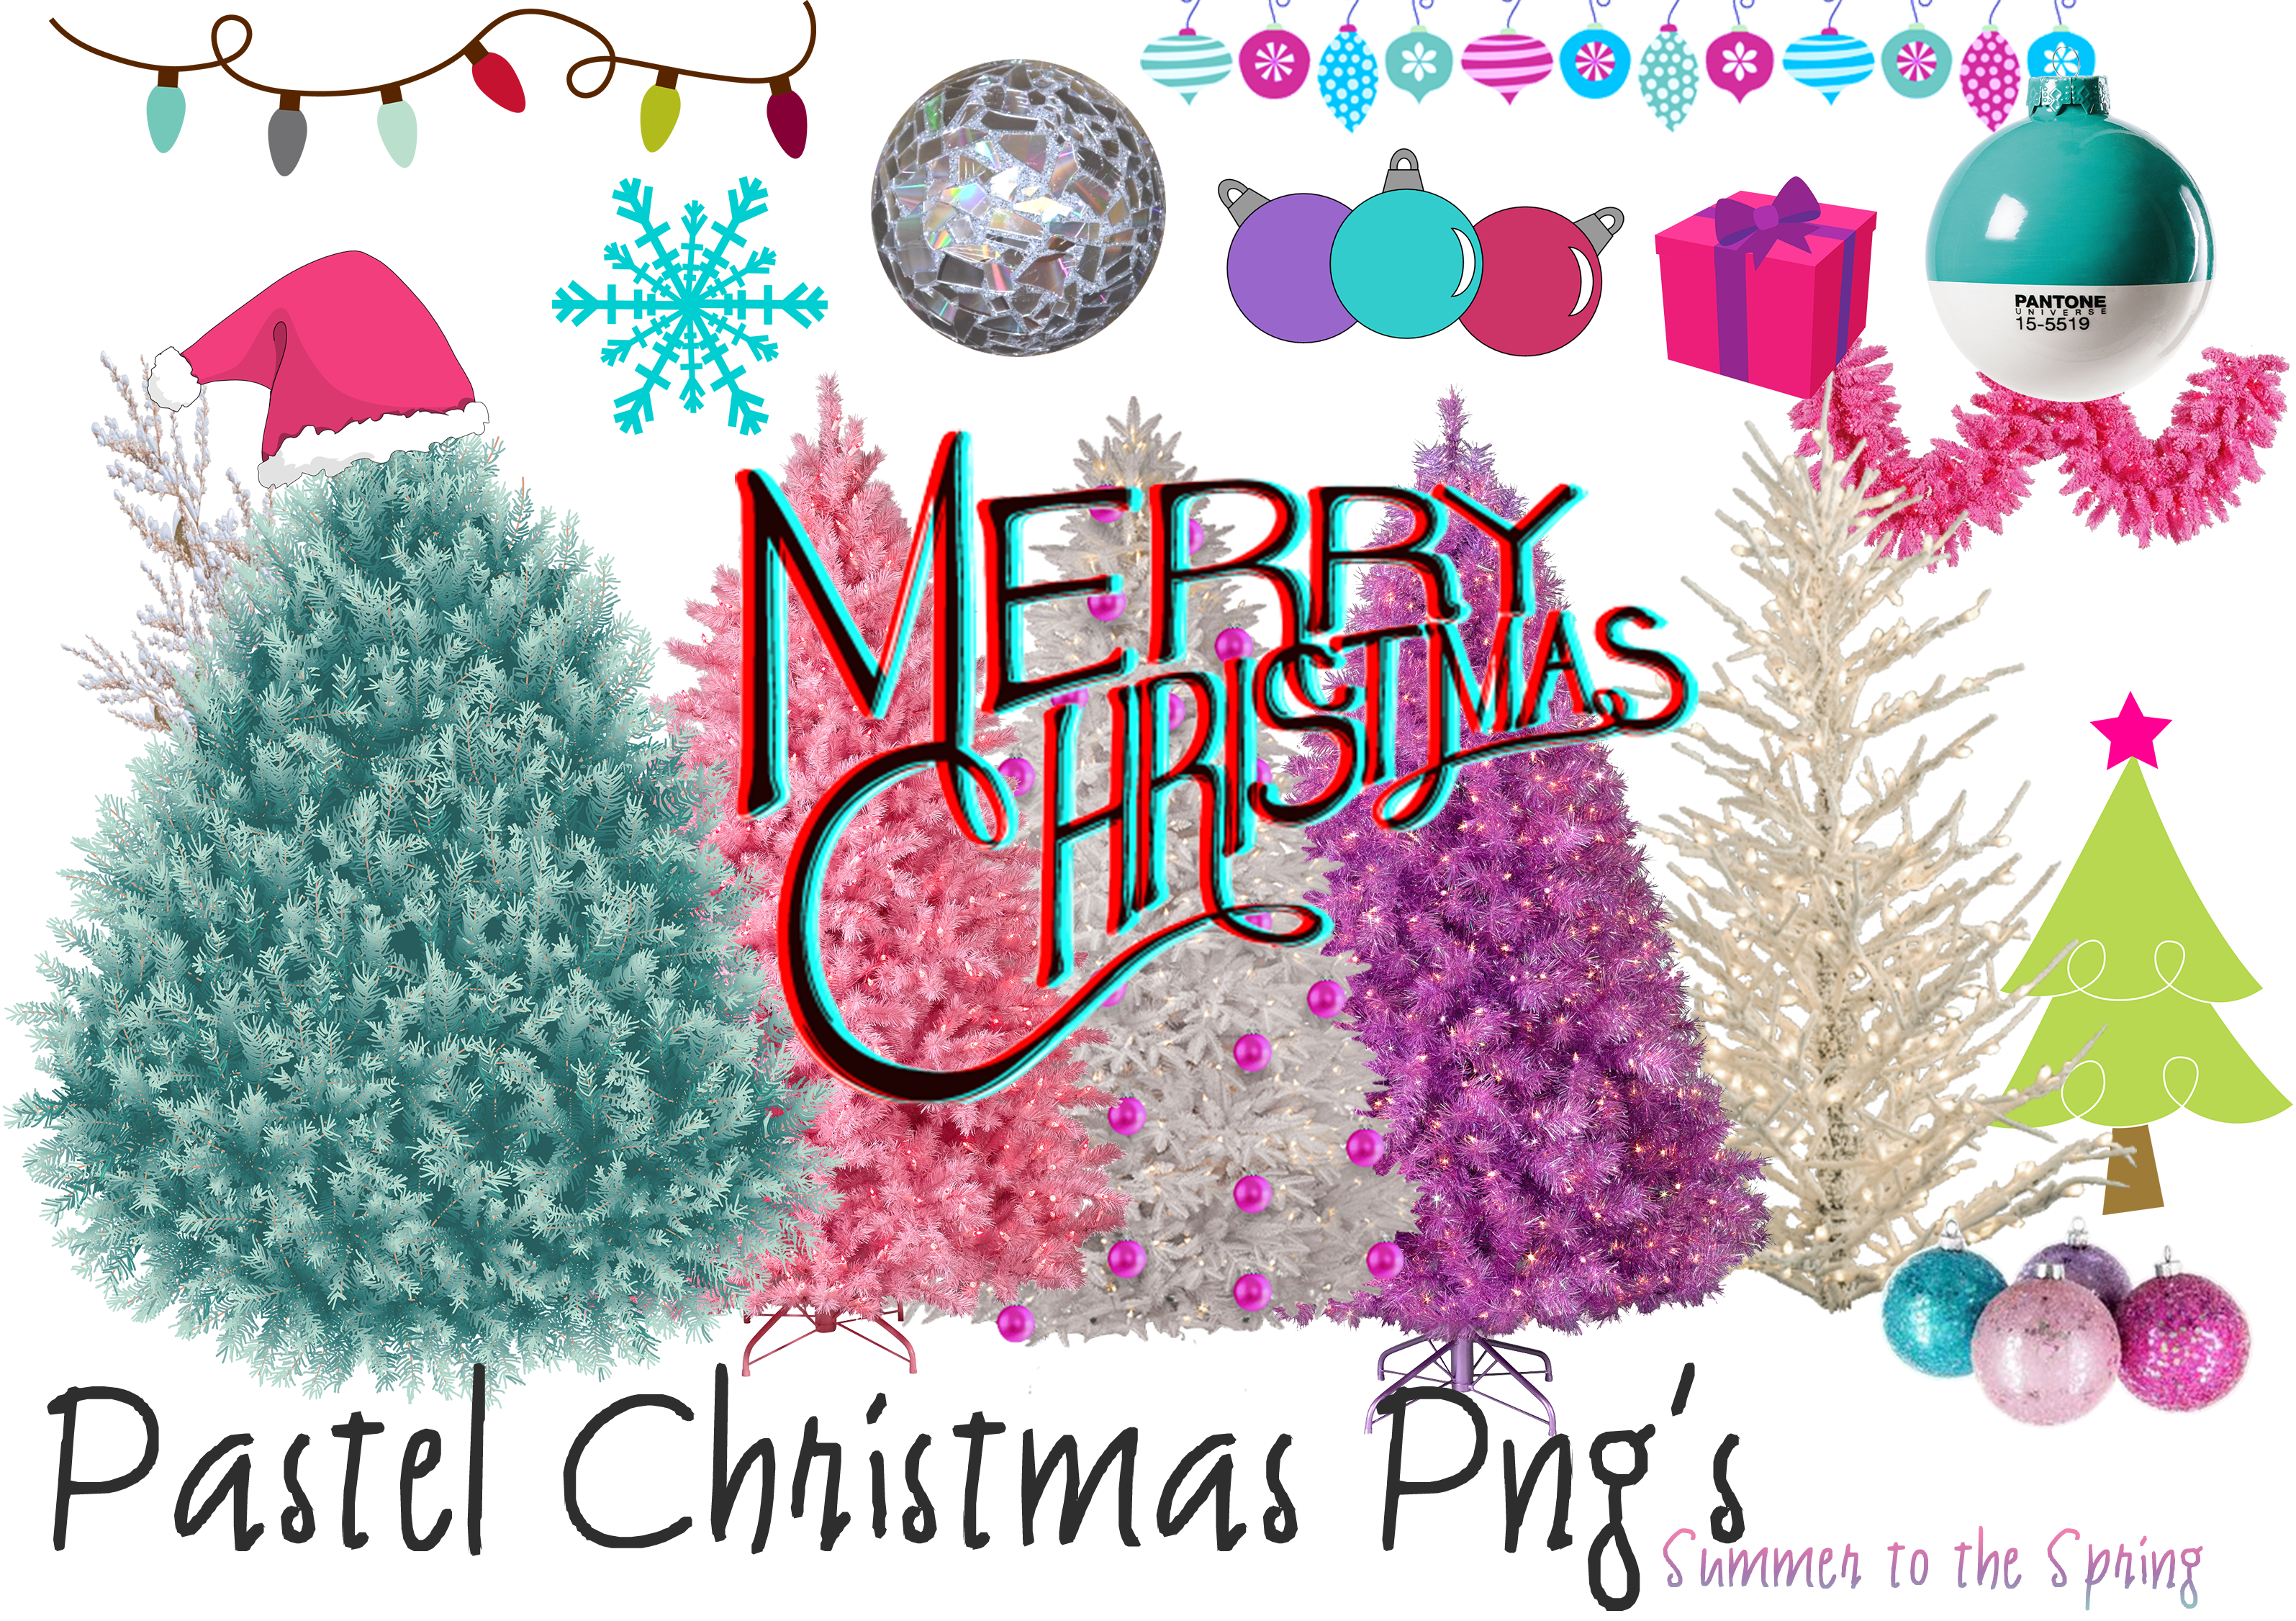 Christmas 2015 clipart banner transparent stock Pastel Christmas Png's by Summer-to-the-spring on DeviantArt banner transparent stock